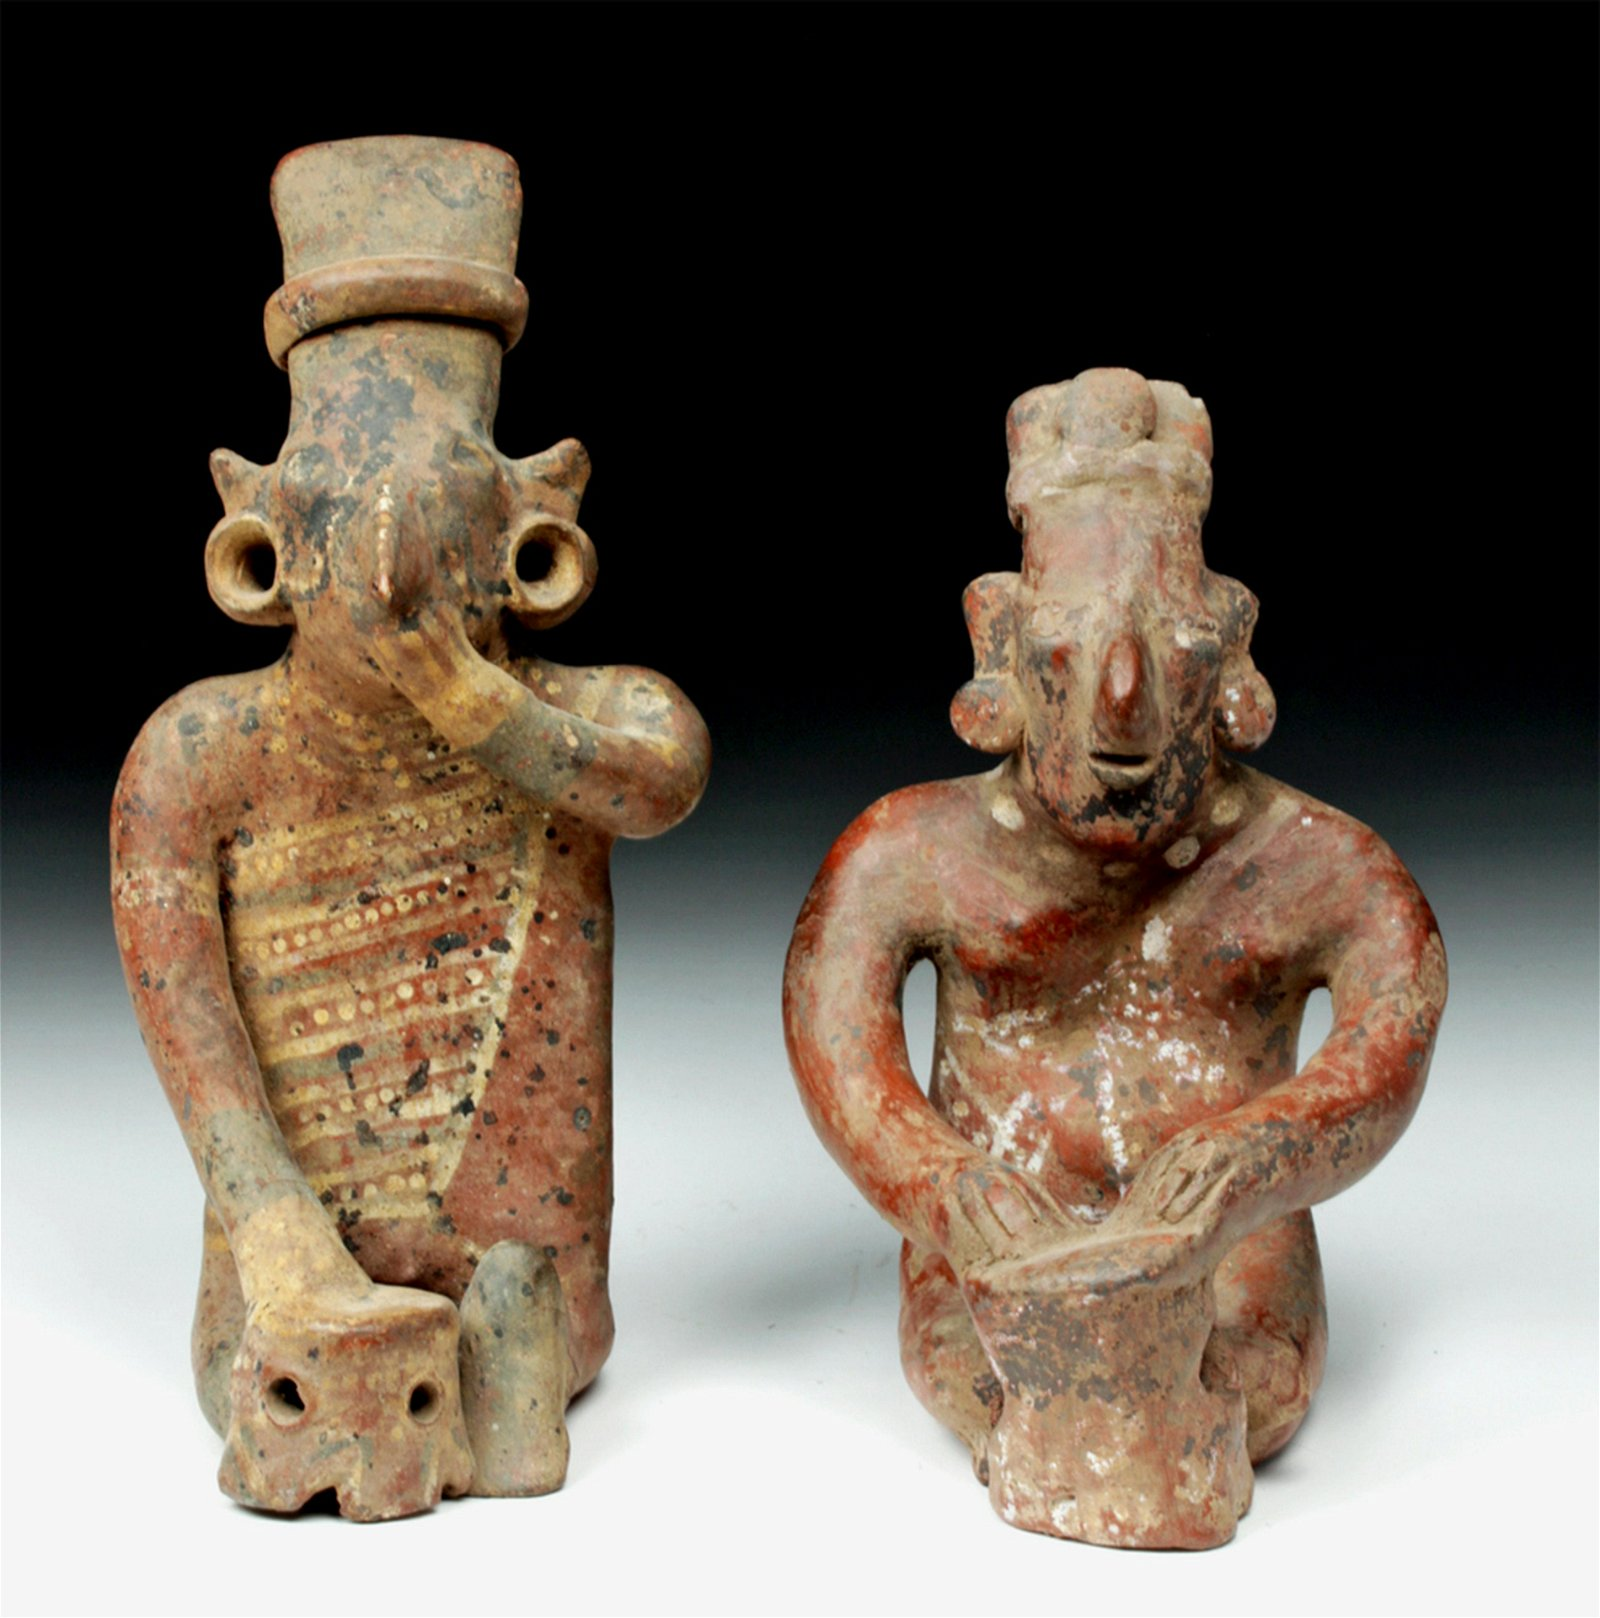 Pair of Large Jalisco Sheepface Pottery Drummers